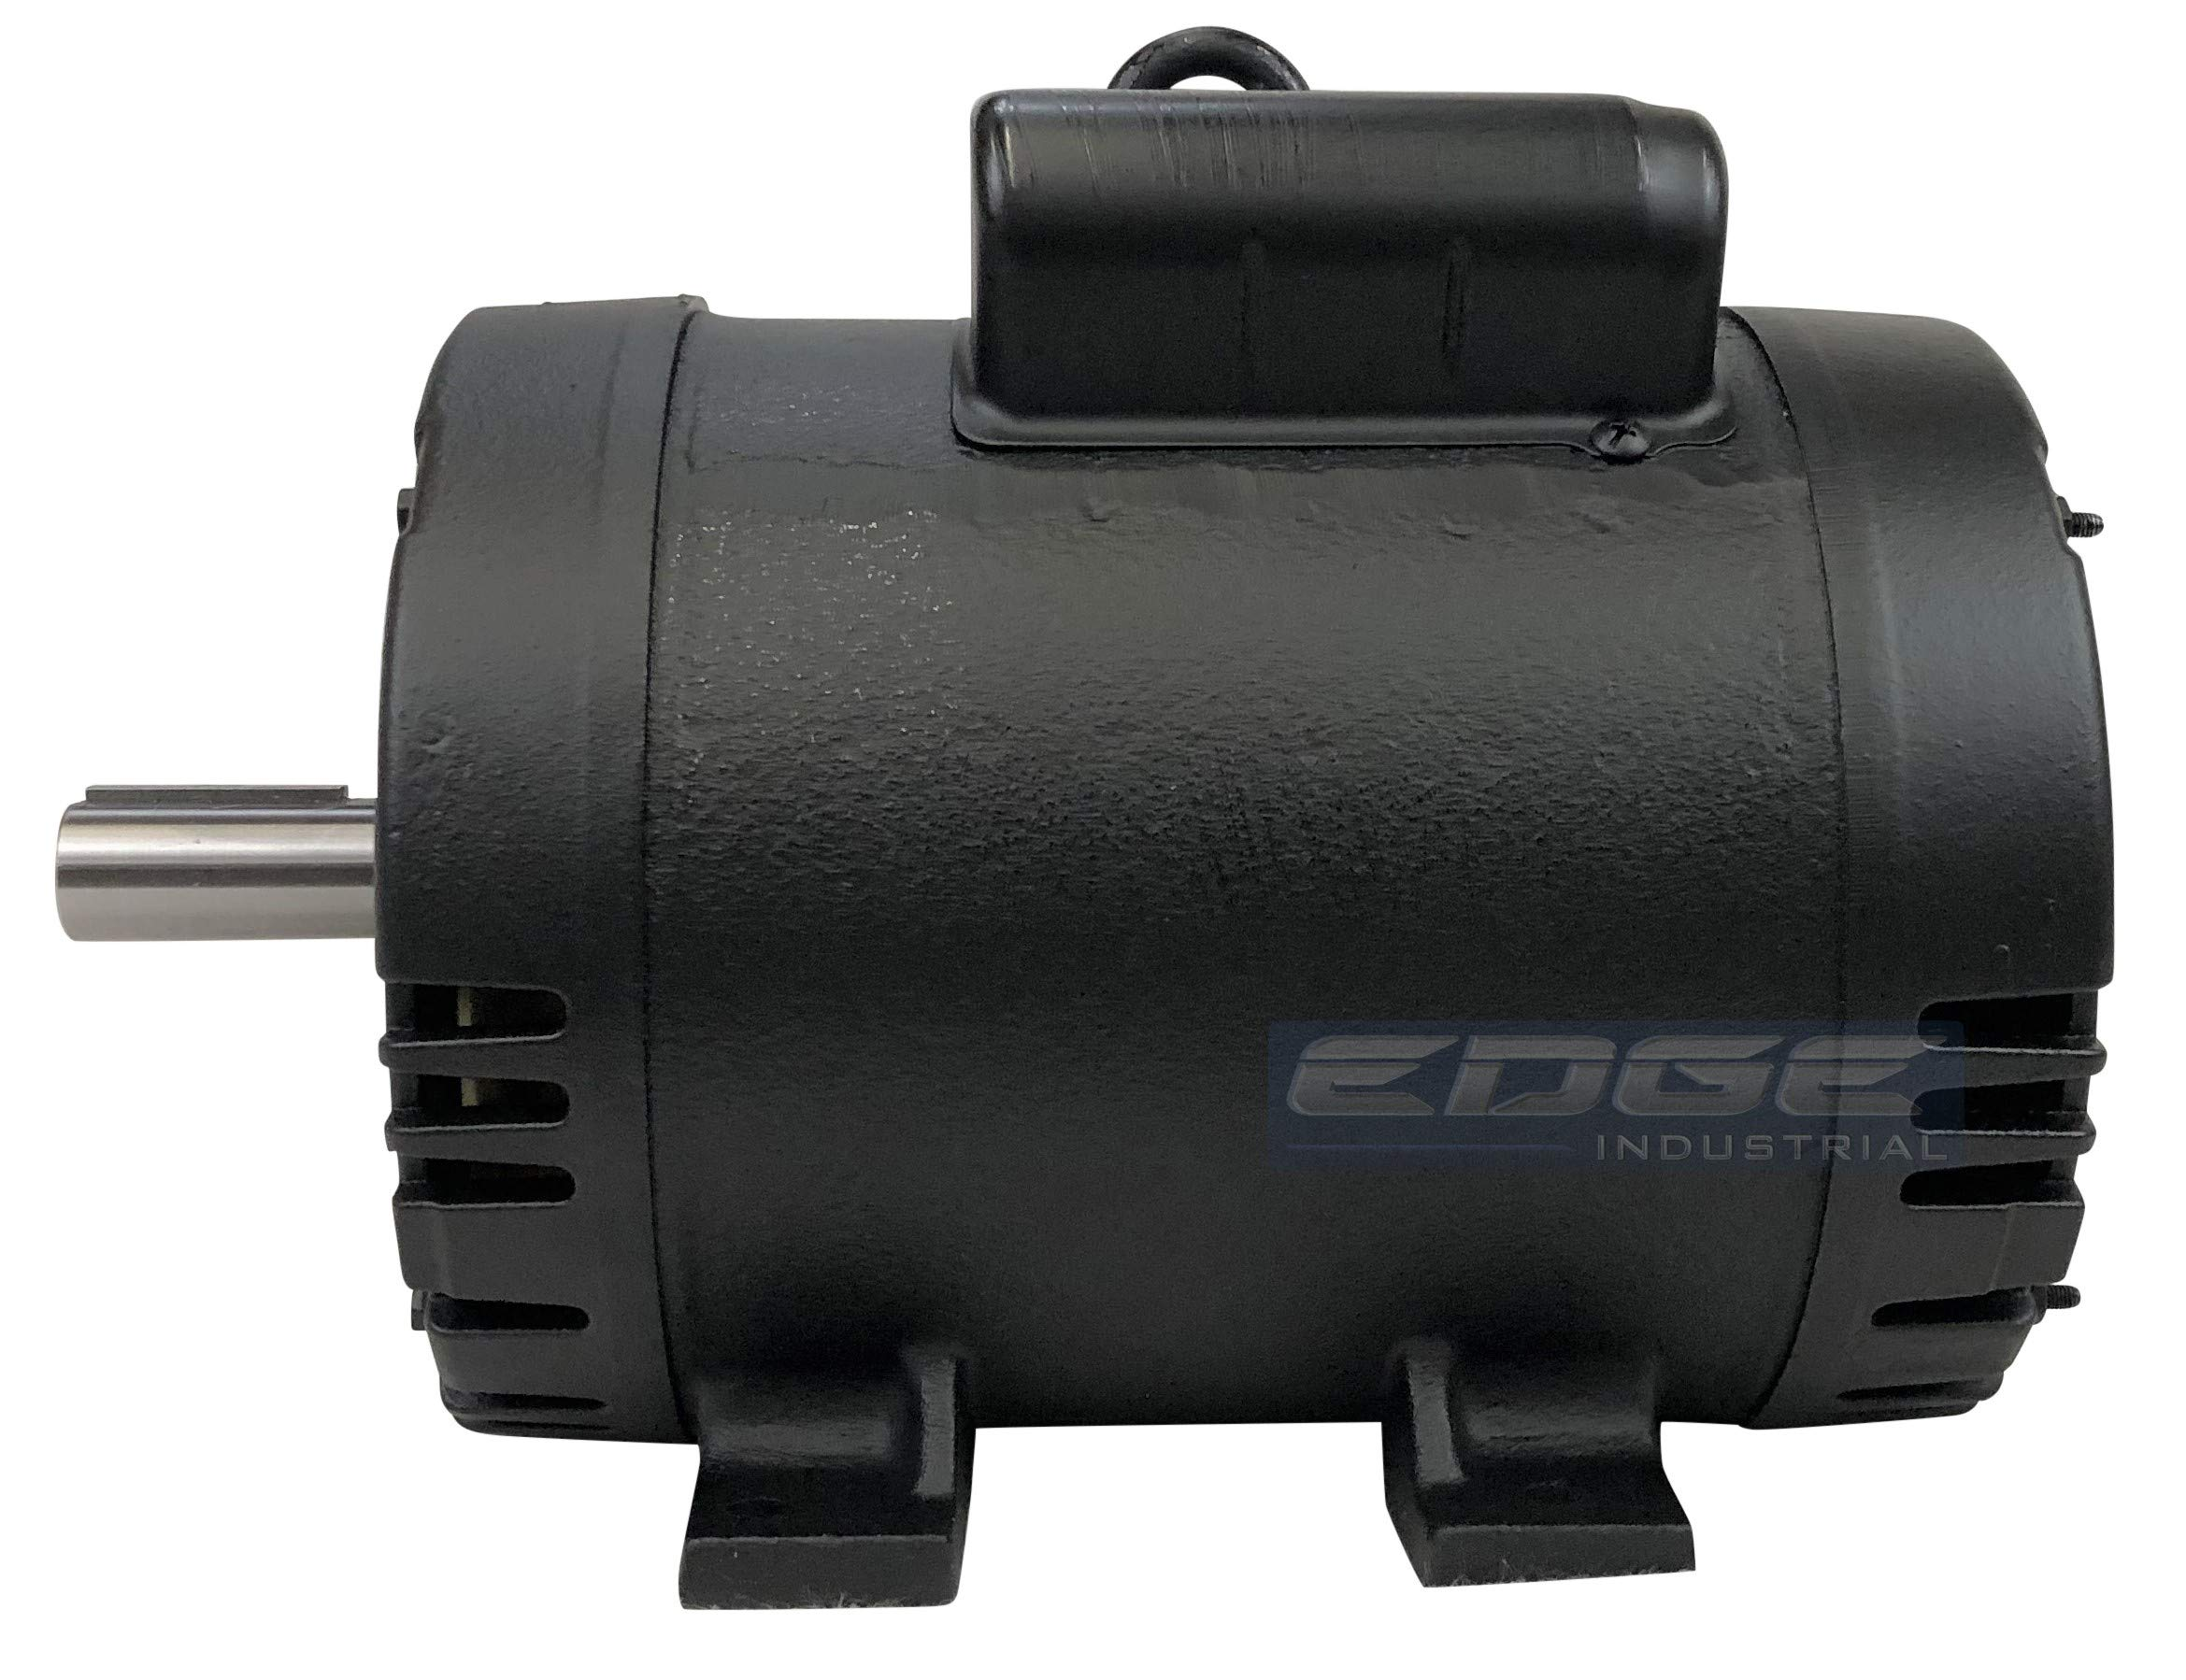 NEW 5HP 184T FRAME WEG ELECTRIC MOTOR FOR AIR COMPRESSOR 1750 RPM 230V 21.5 AMP by WEG (Image #6)